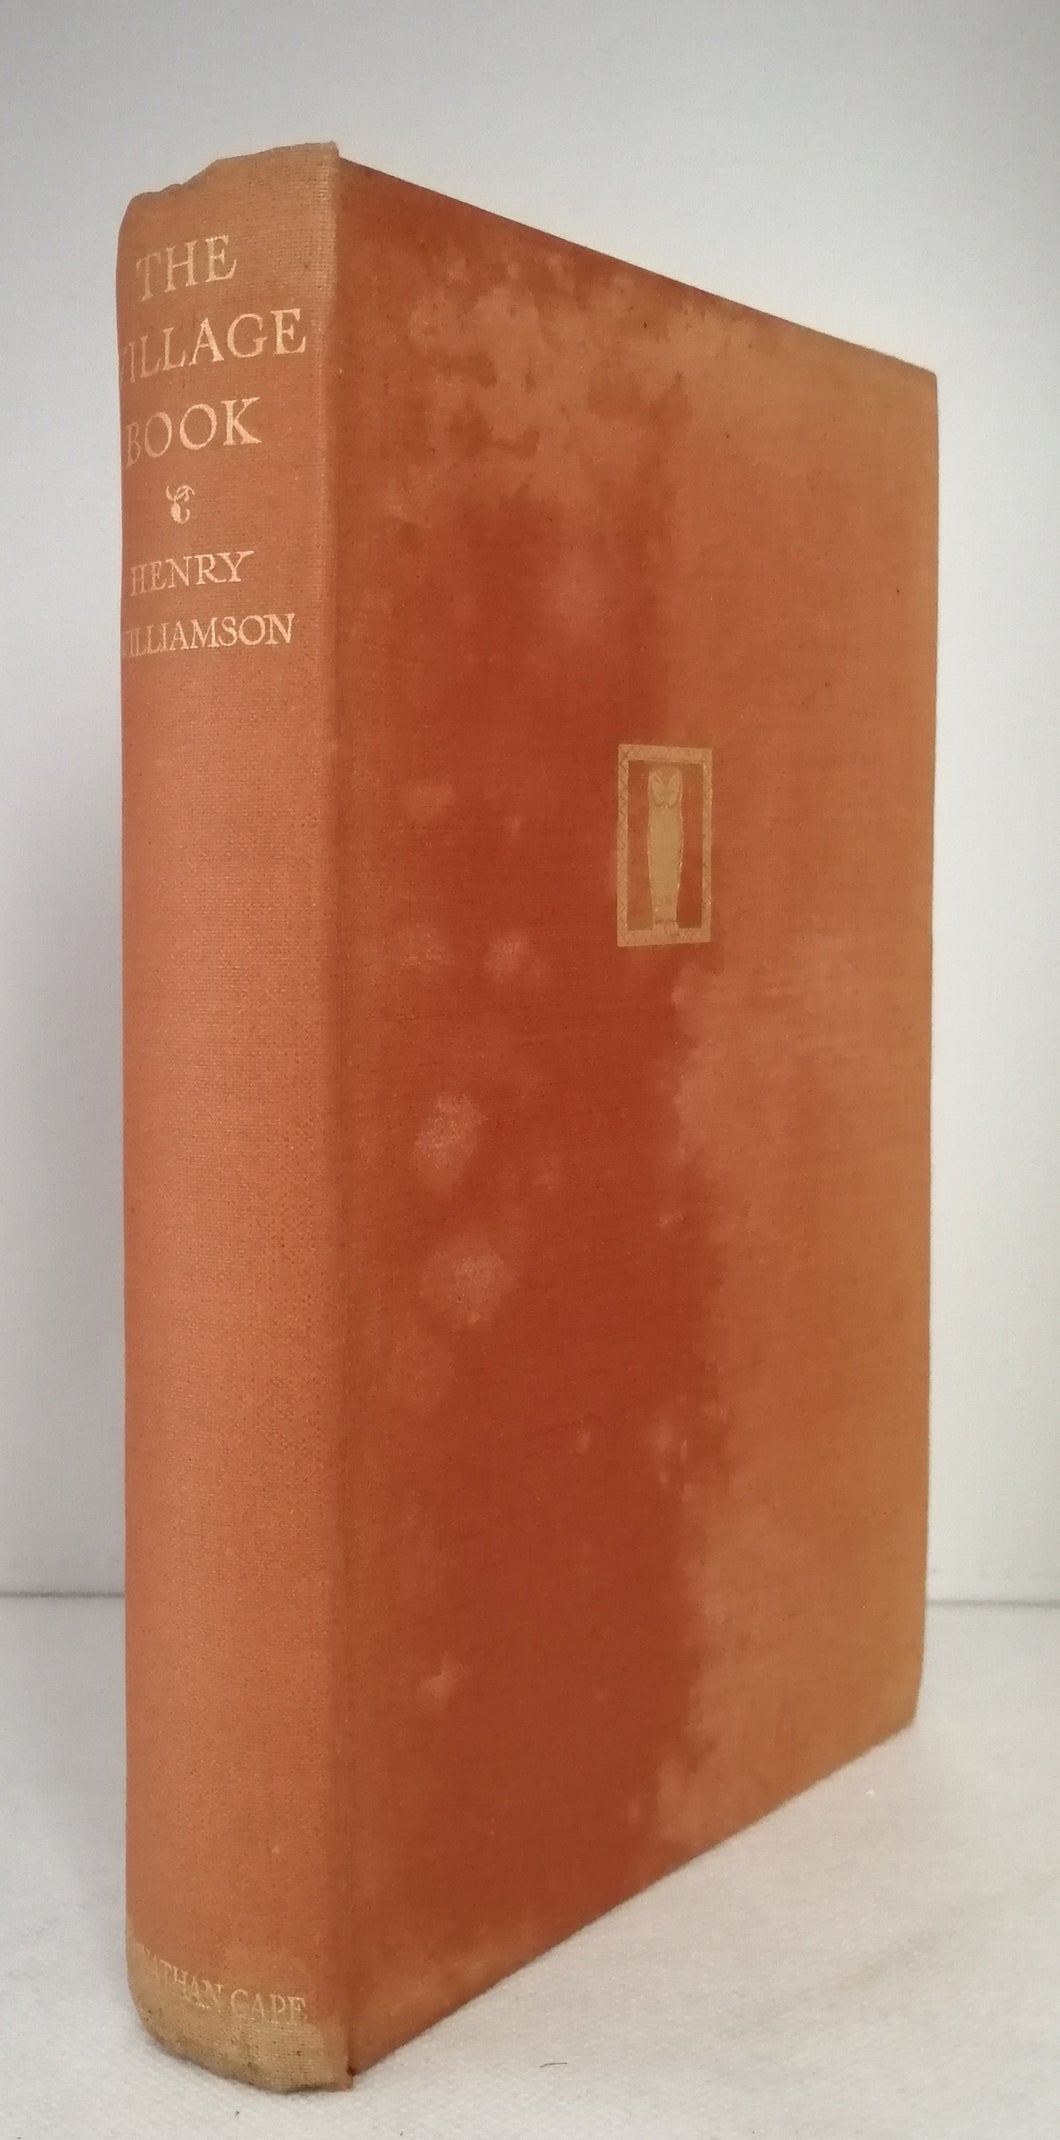 The Village Book by Henry Williamson FIRST EDITION, SECOND IMPRESSION